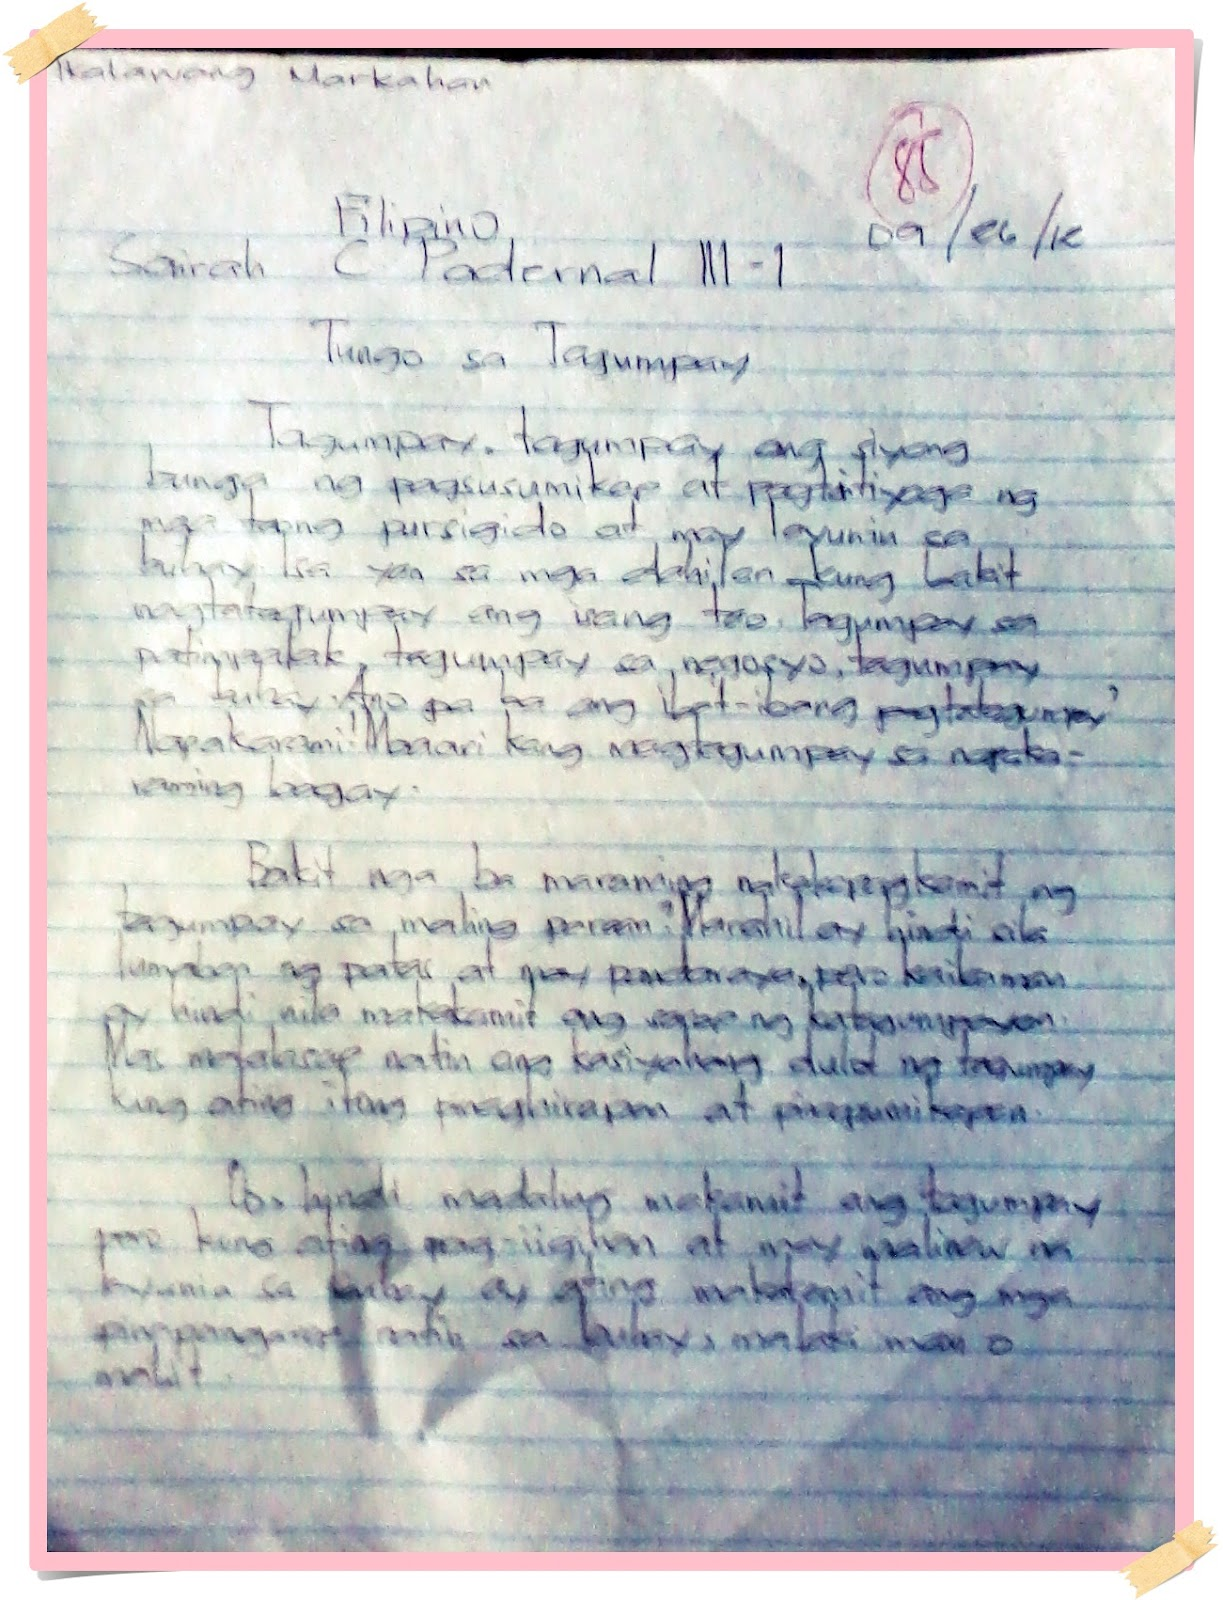 tagalog essay tungkol sa kalikasan Contextual translation of sanaysay tungkol sa kalikasan into english human  translations with examples: taglish, about nature, essay on trees, essay about.